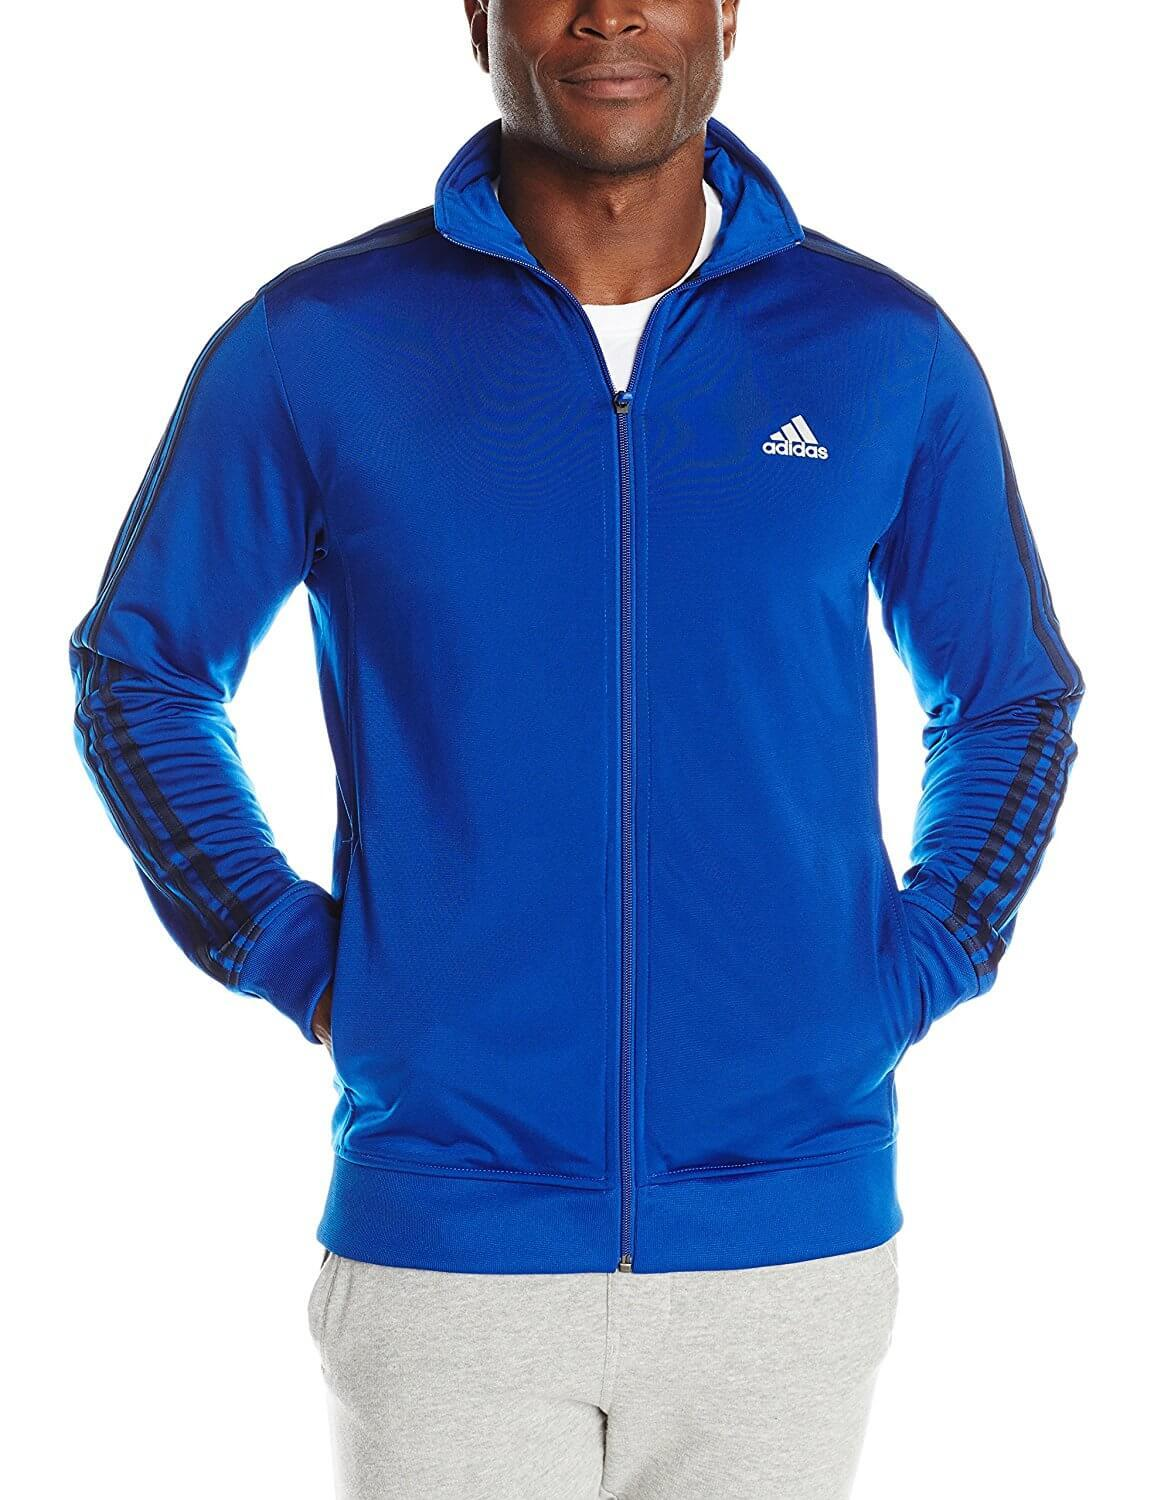 1. Adidas Men's Essential Tricot Jacket